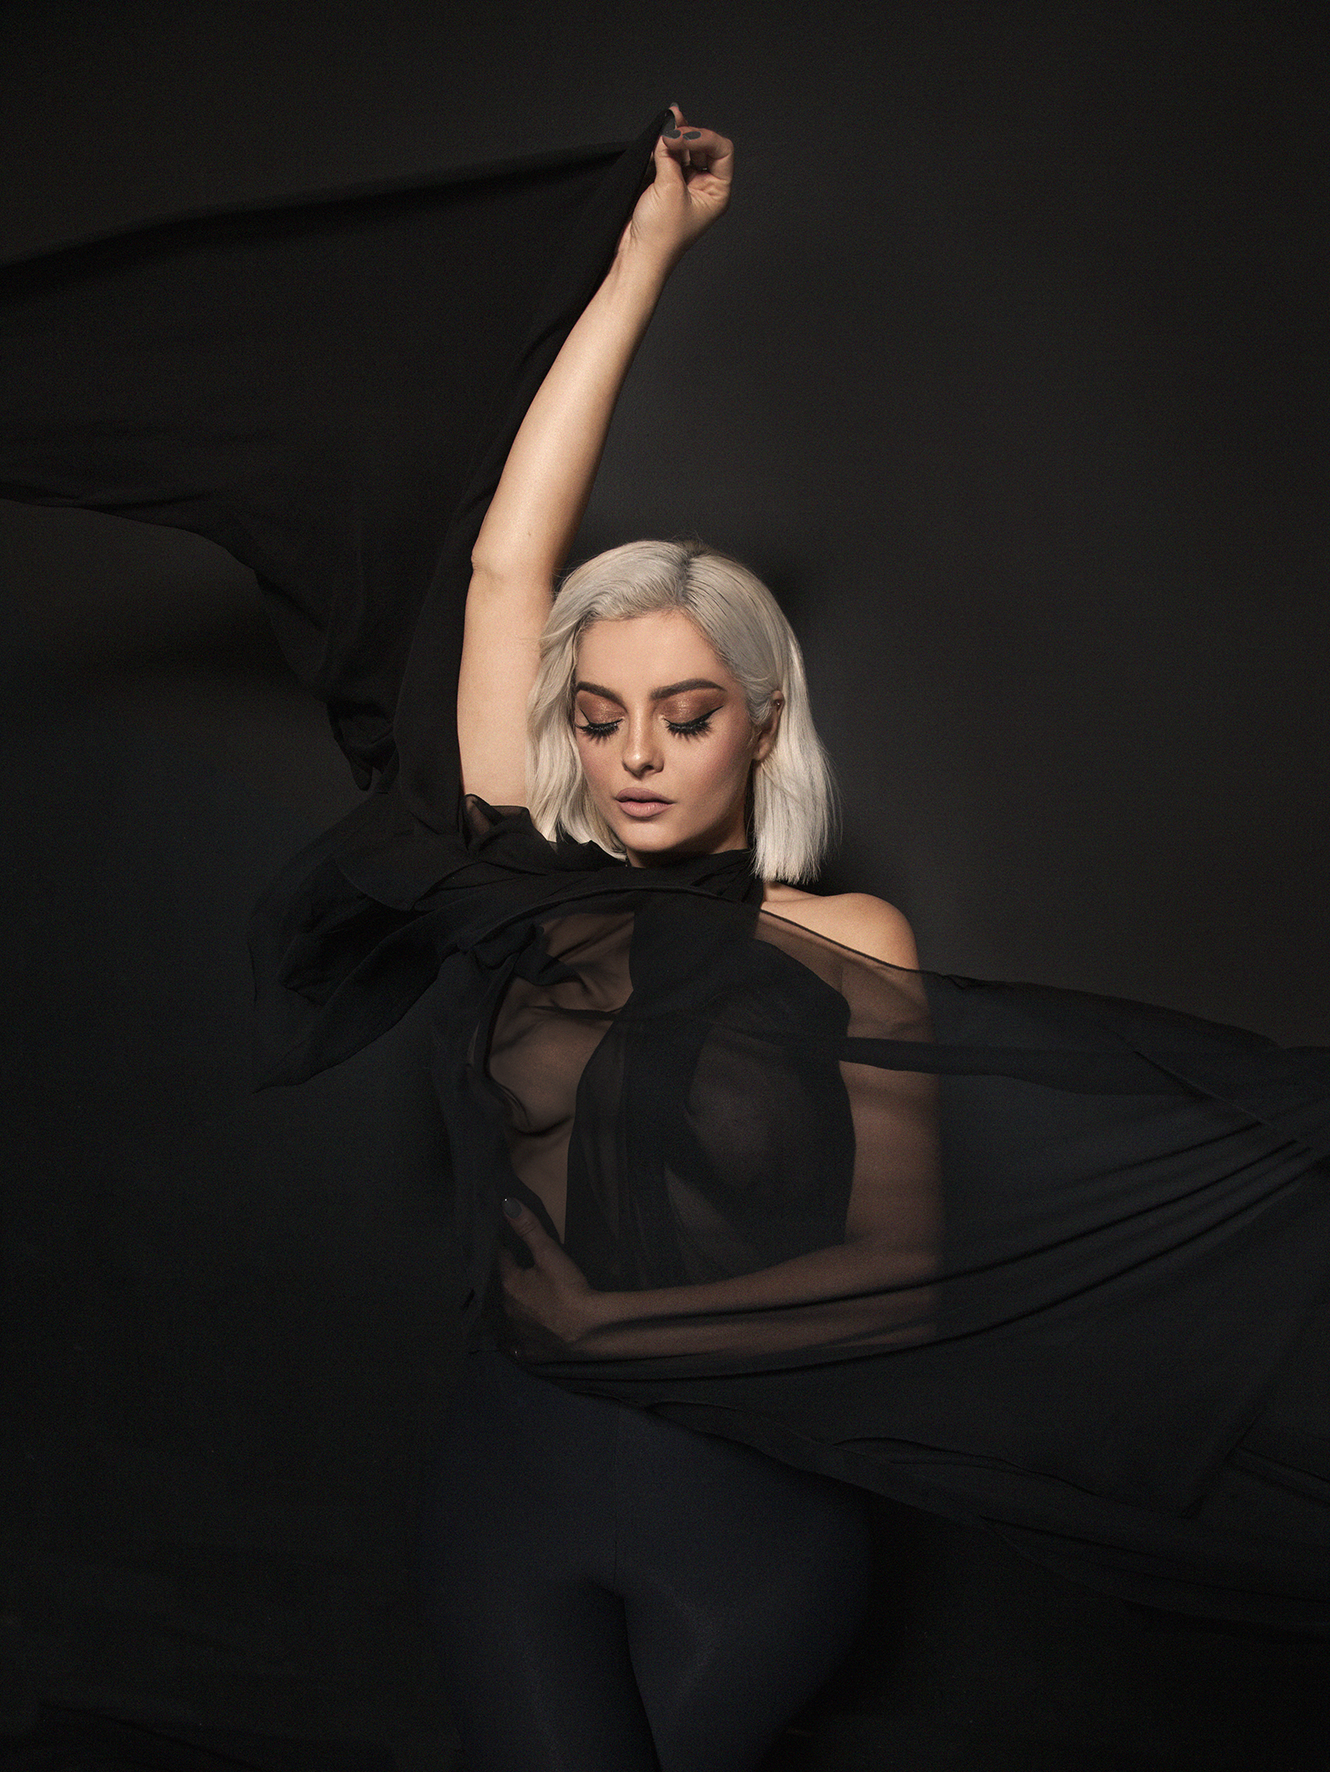 Thom Kerr Bebe Rexha You Can't Stop The Girl Maleficent